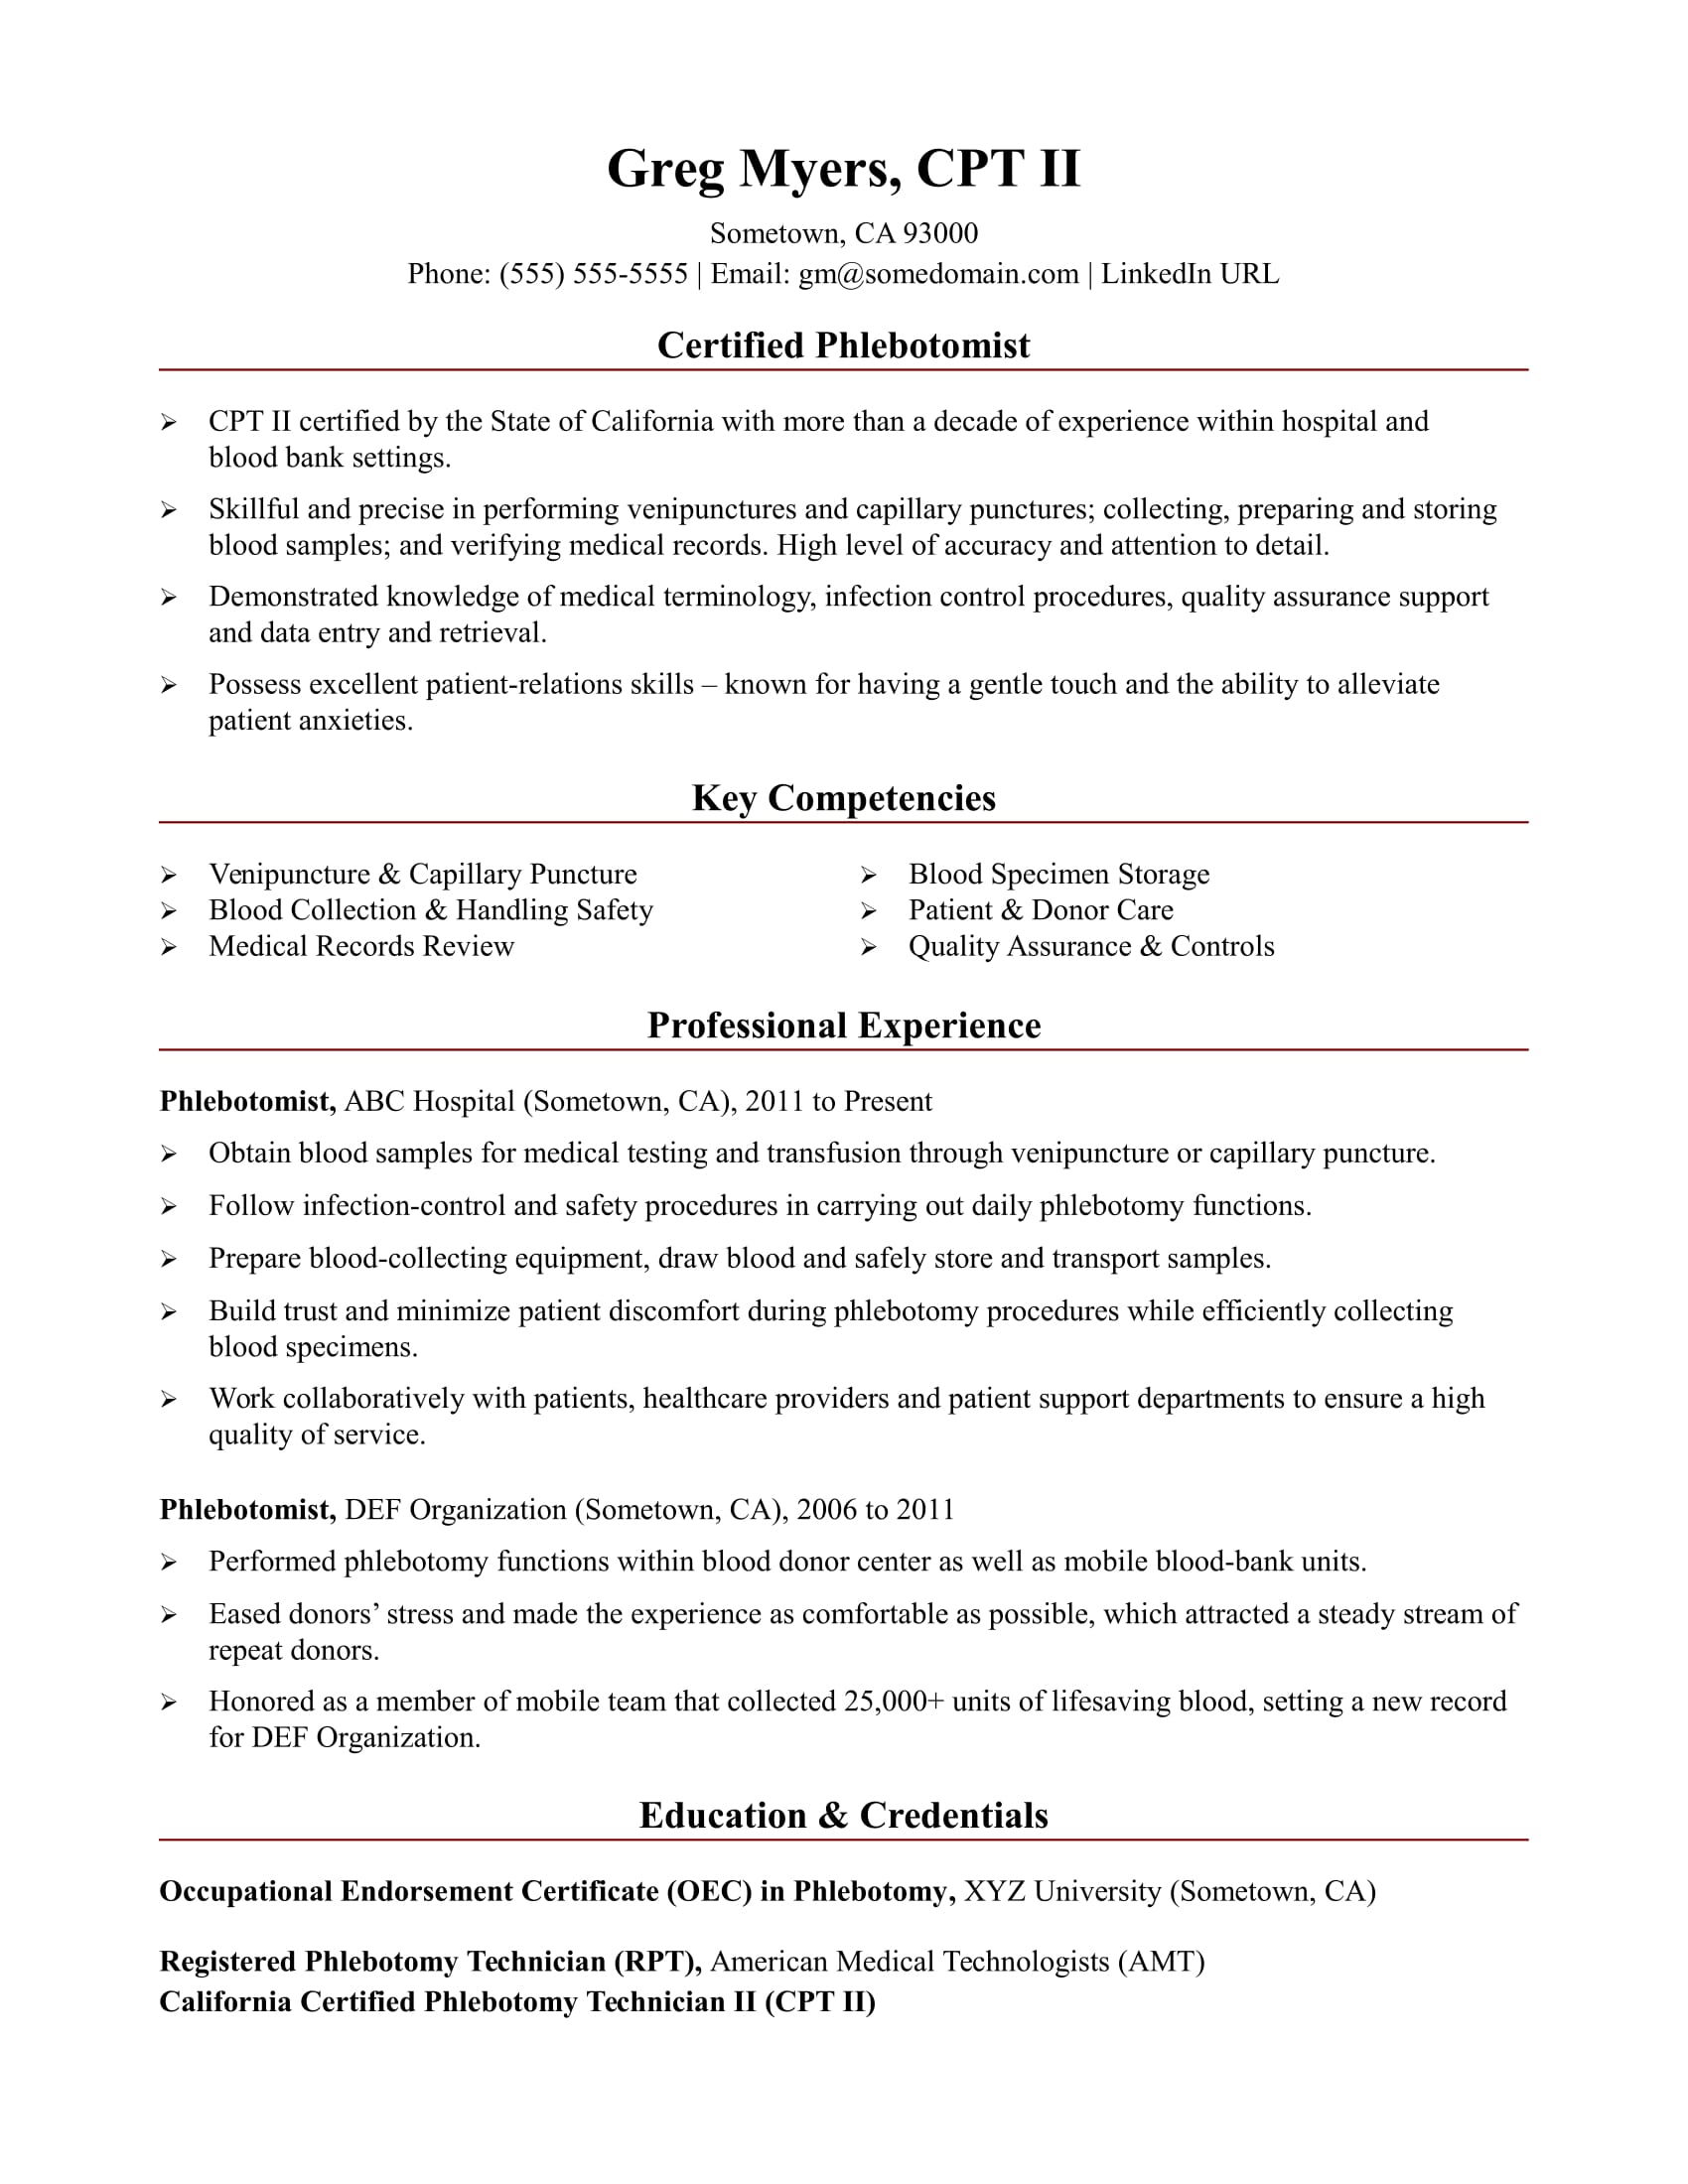 Sample Resume For A Phlebotomist  Resume Competencies